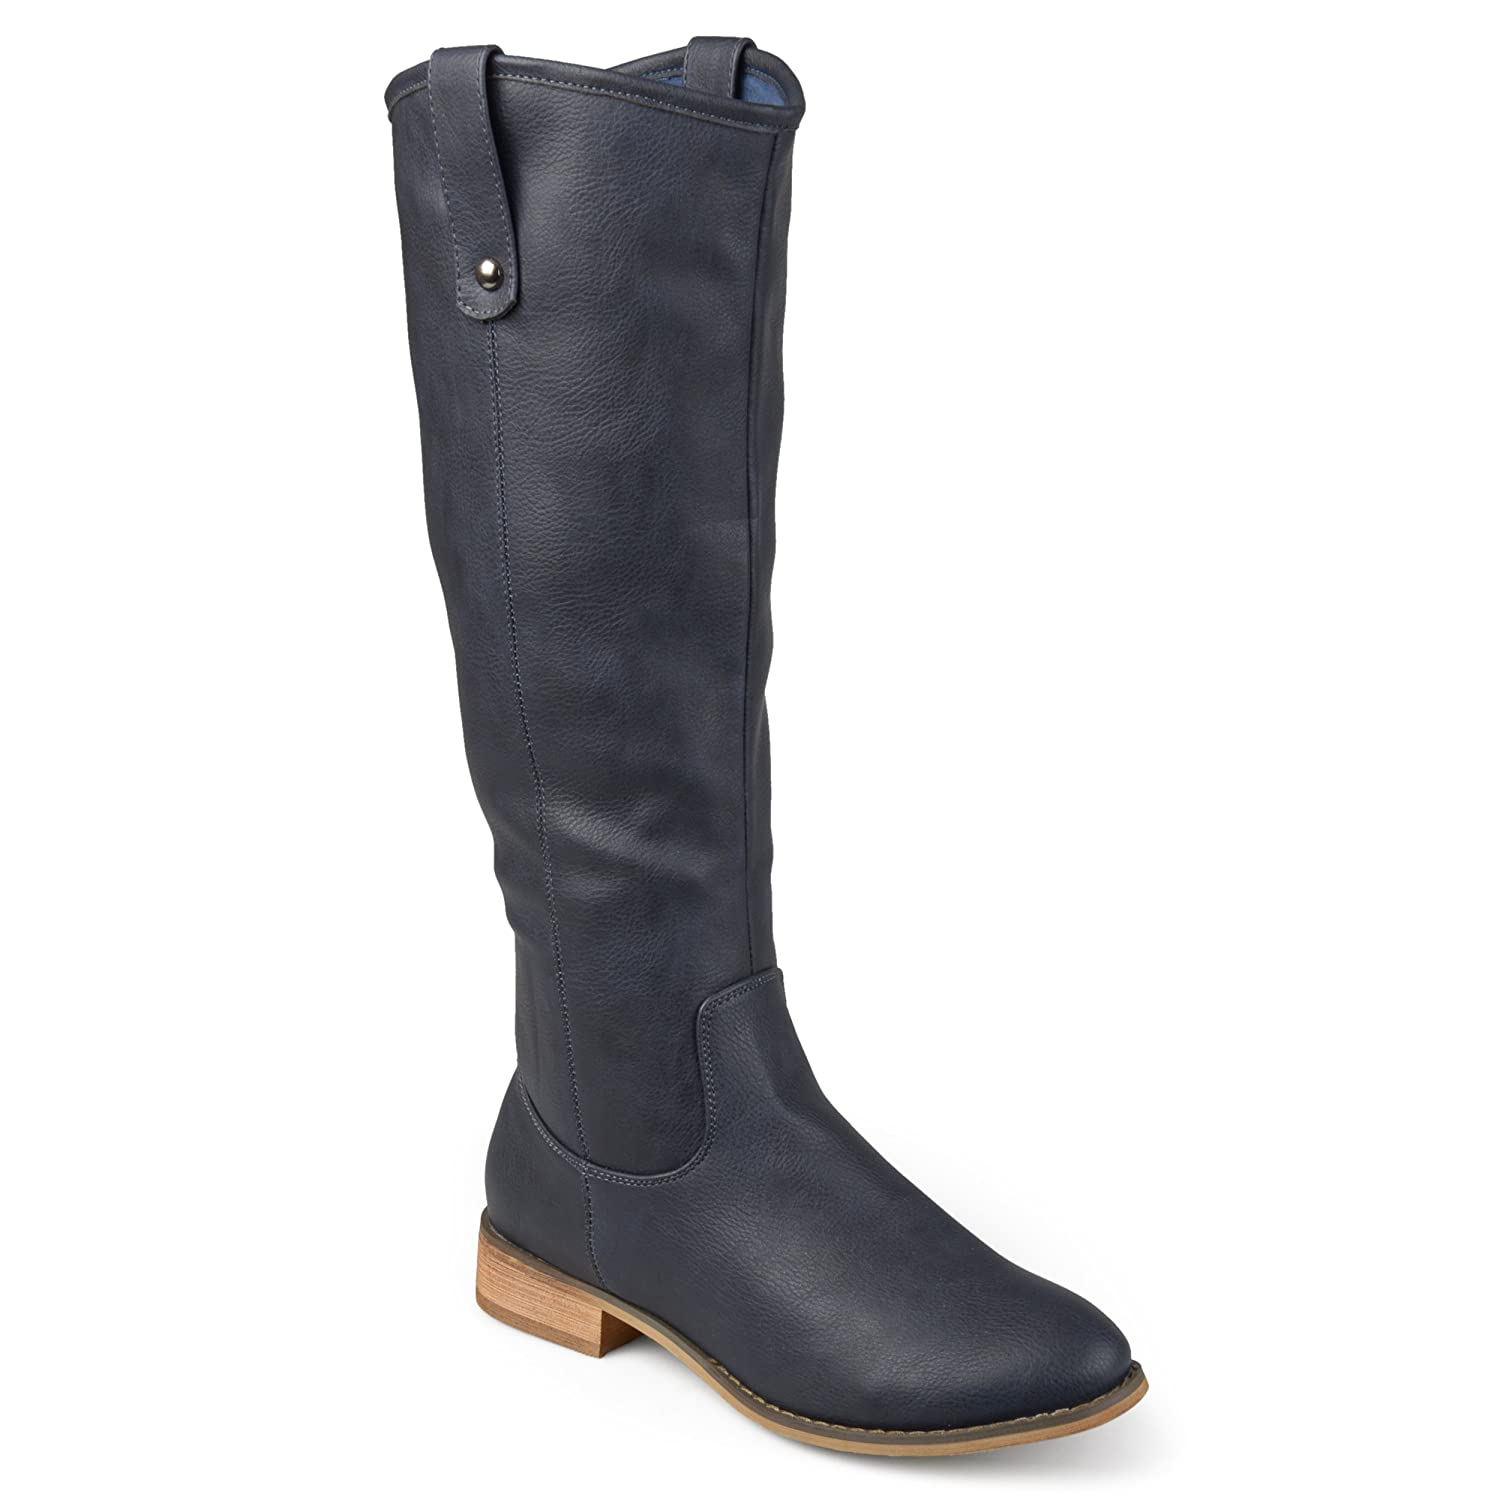 Journee Collection Womens Regular Wide and Extra Wide Calf Round Toe Mid-Calf Boots